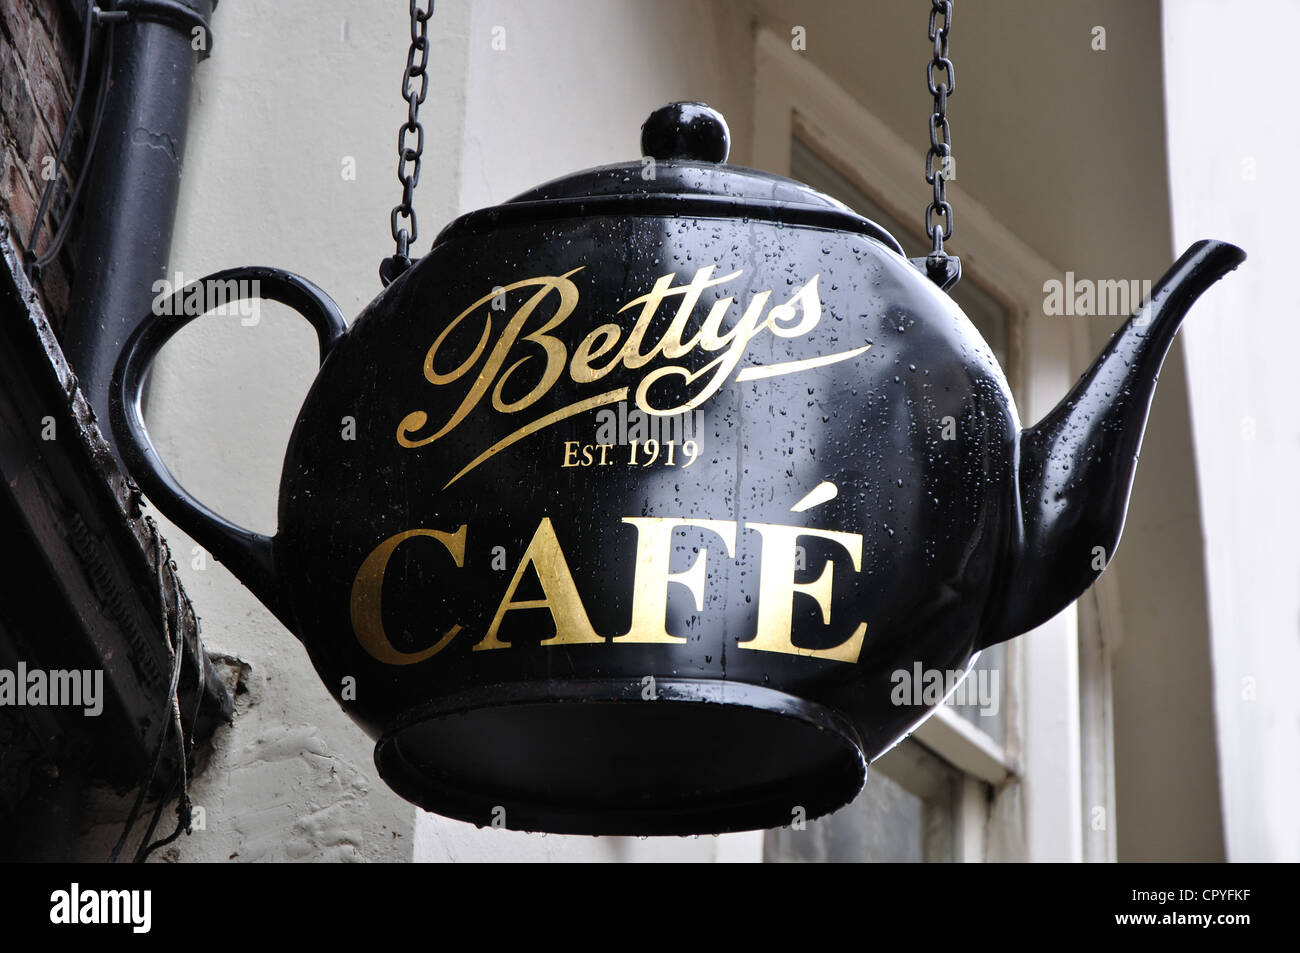 teapot sign for Bettys cafe and tearoom, Stonegate, York, England, UK - Stock Image